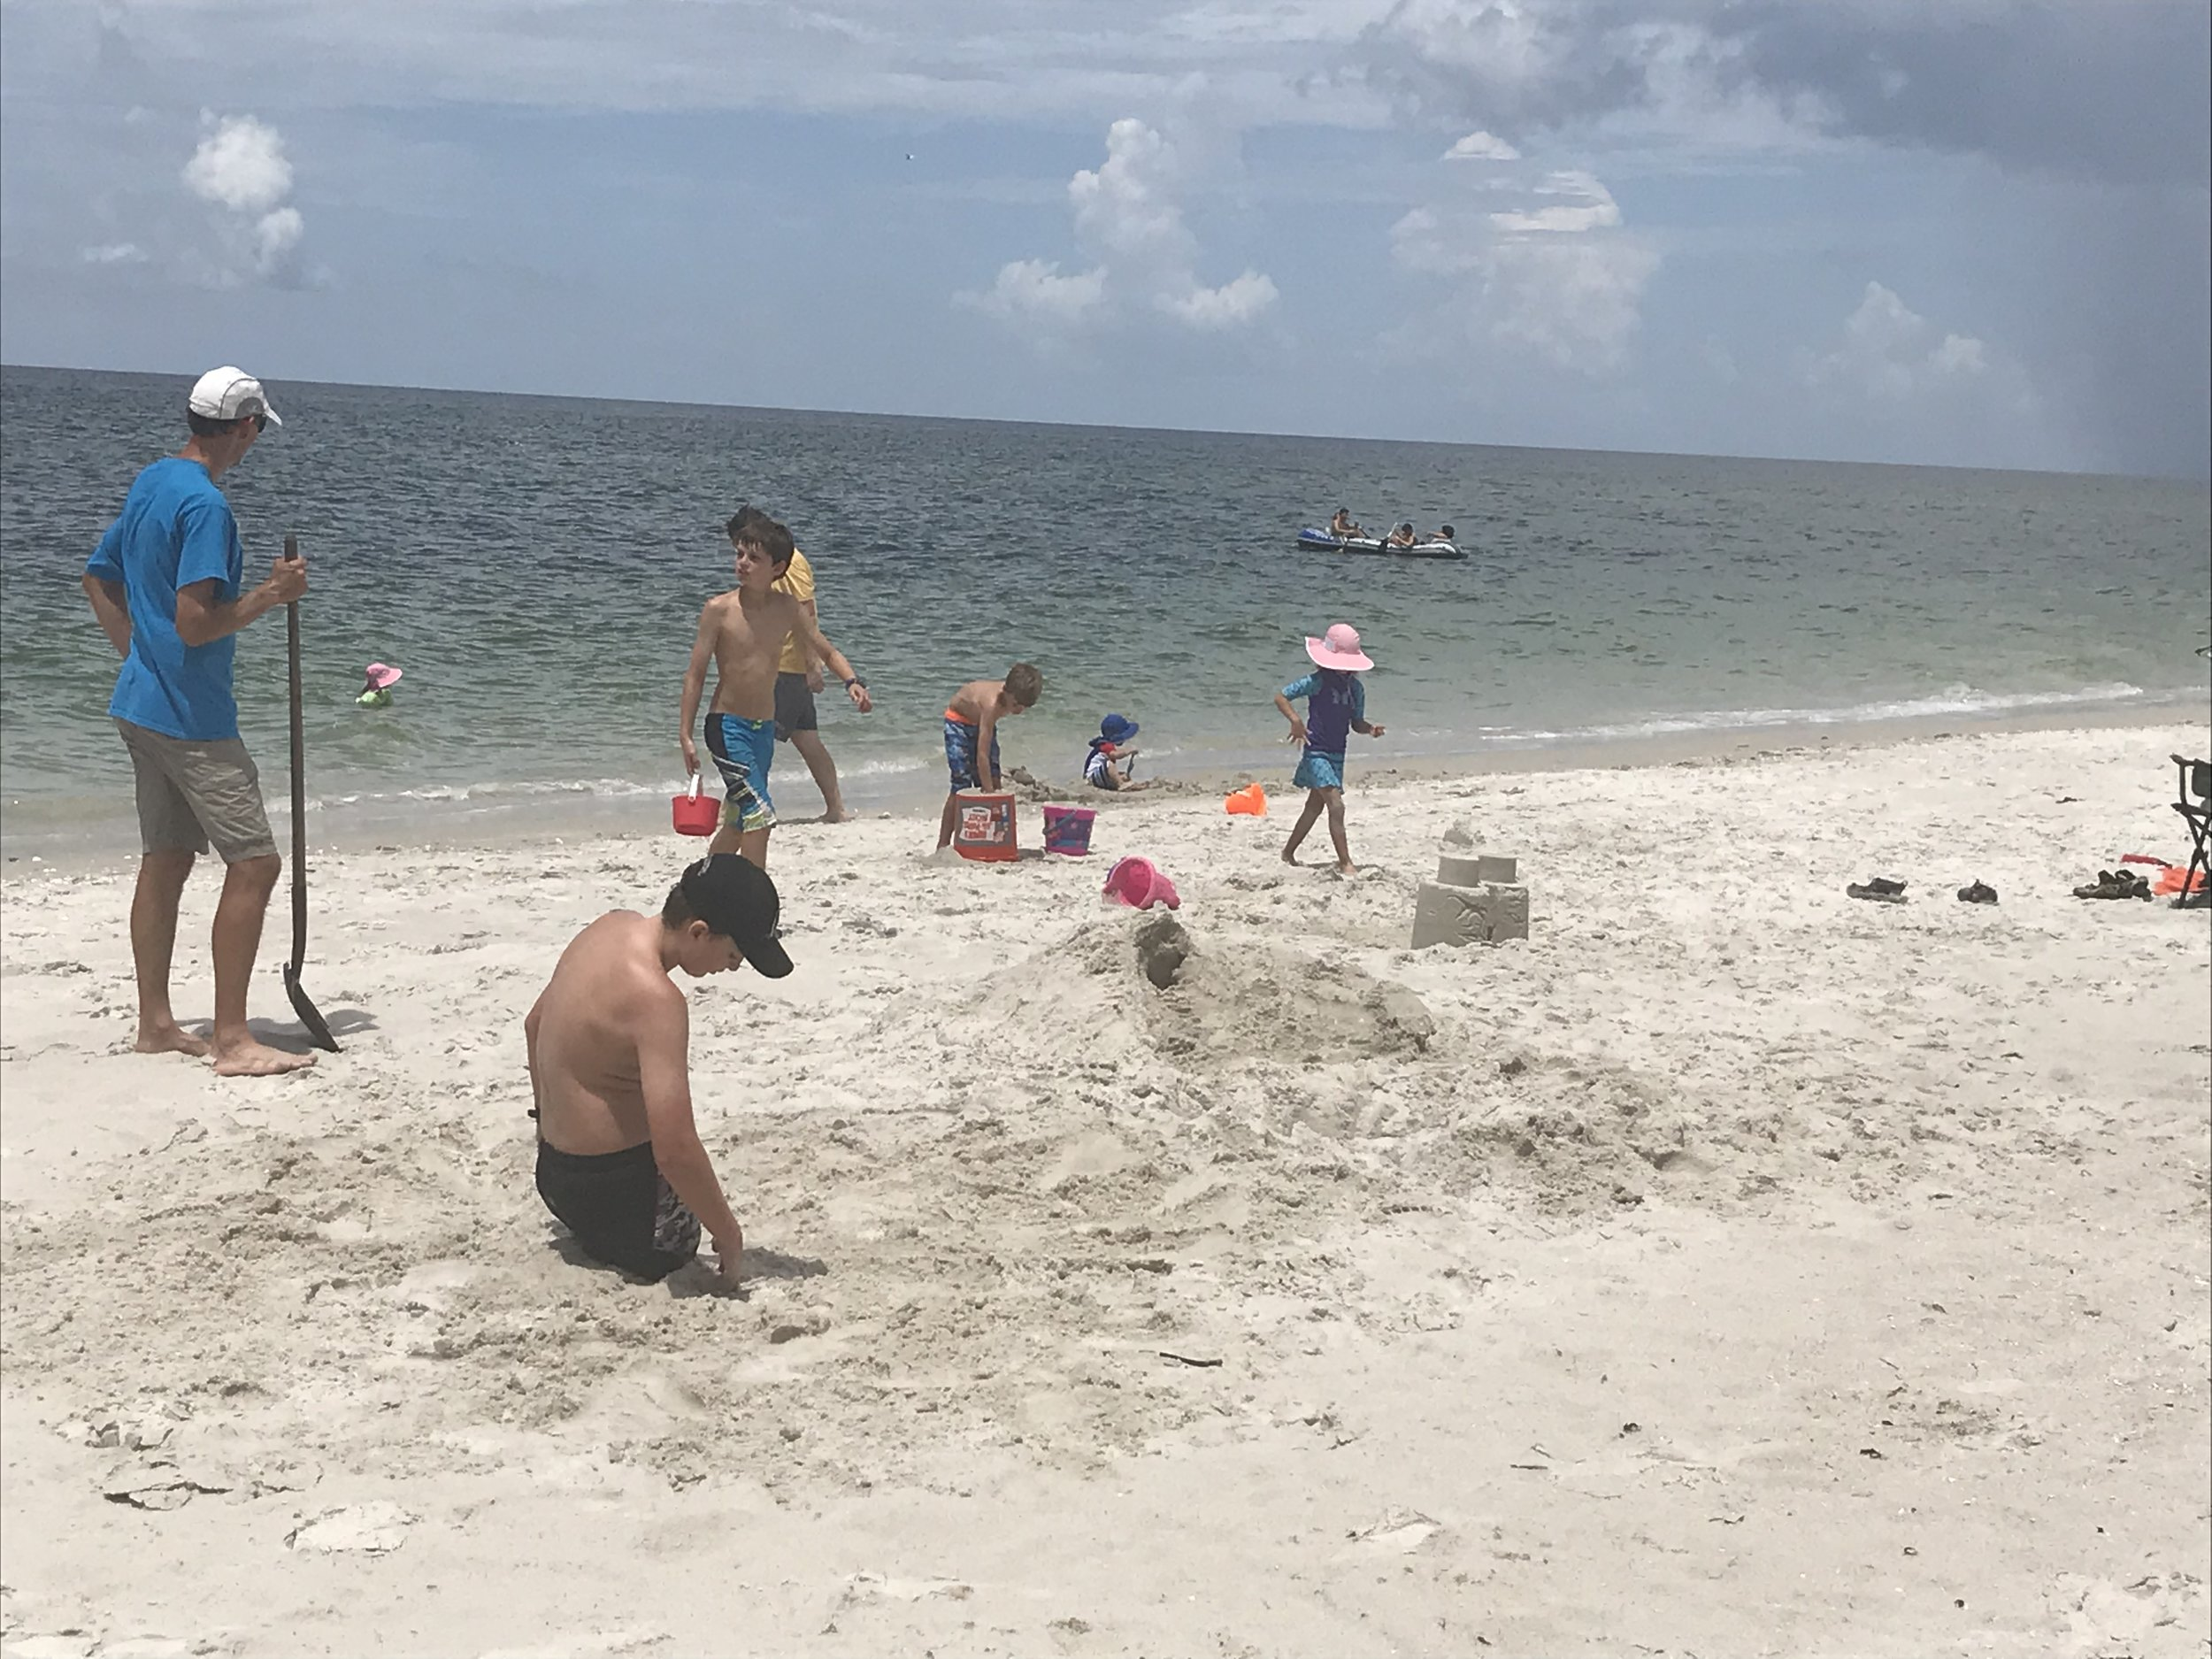 Digging holes, building sand castles, and playing in the warm and calm Gulf coast waters with our new friends, the Floods.